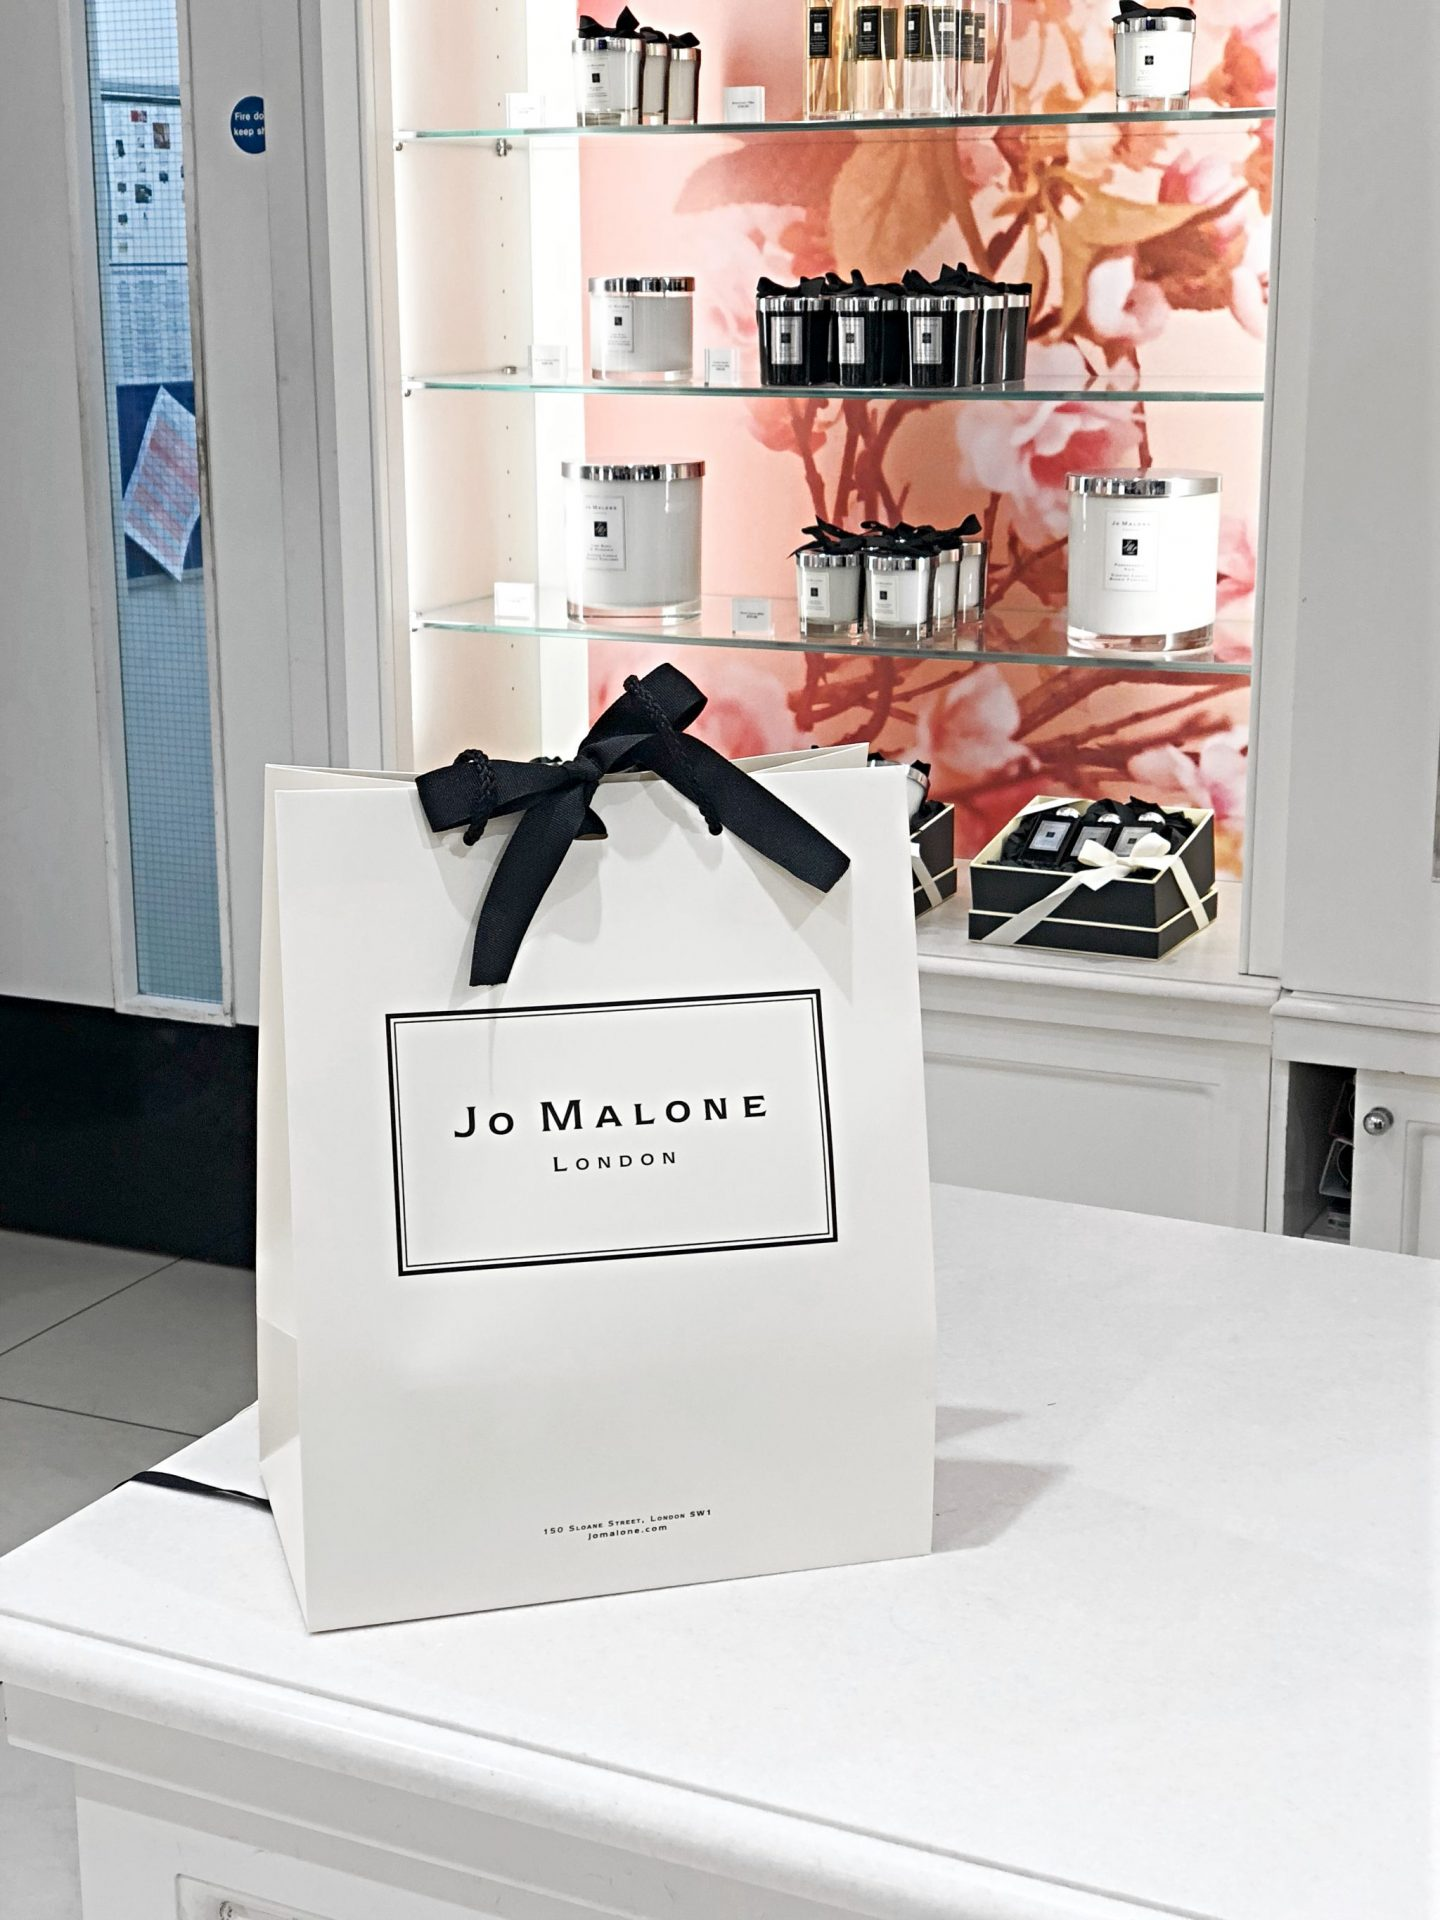 Jo Malone at Gatwick North Terminal